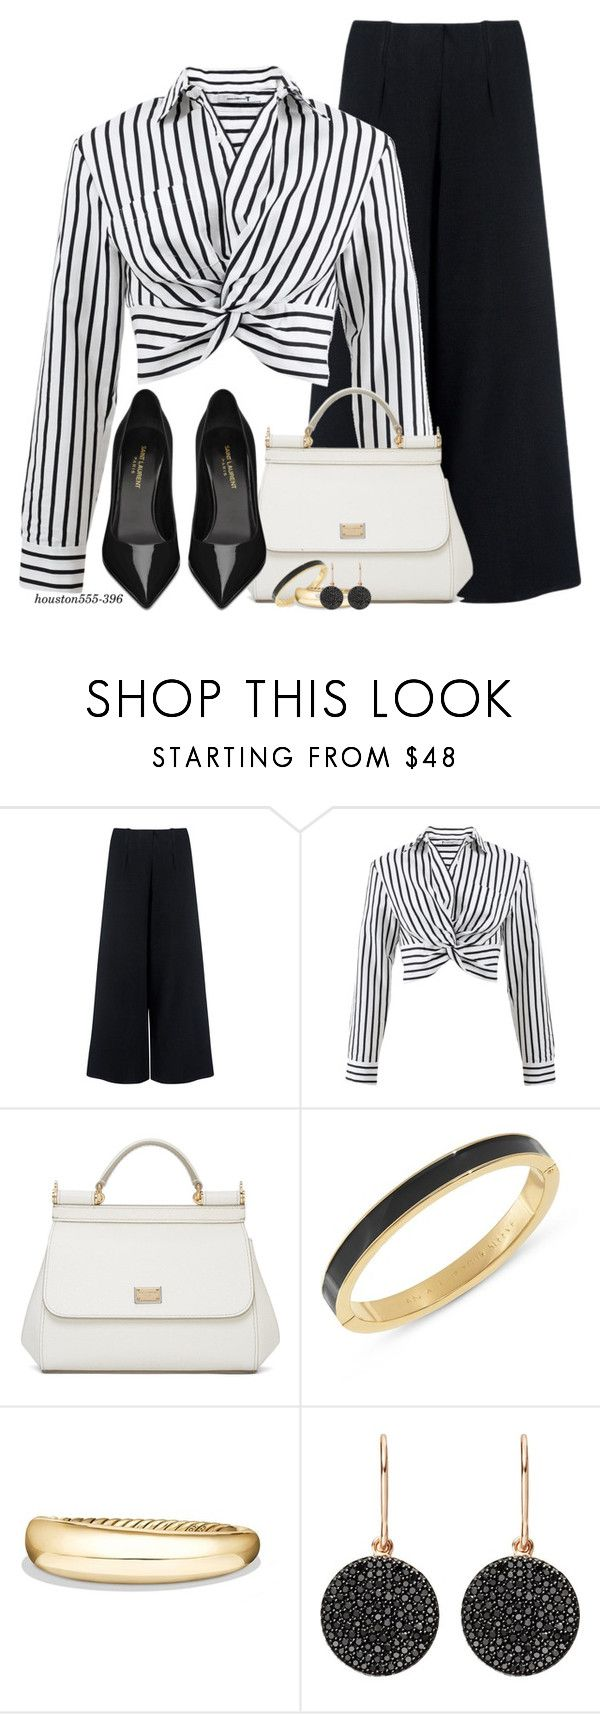 """Black & White"" by houston555-396 ❤ liked on Polyvore featuring C/MEO COLLECTIVE, T By Alexander Wang, Dolce&Gabbana, Kate Spade, David Yurman, Astley Clarke and Yves Saint Laurent"